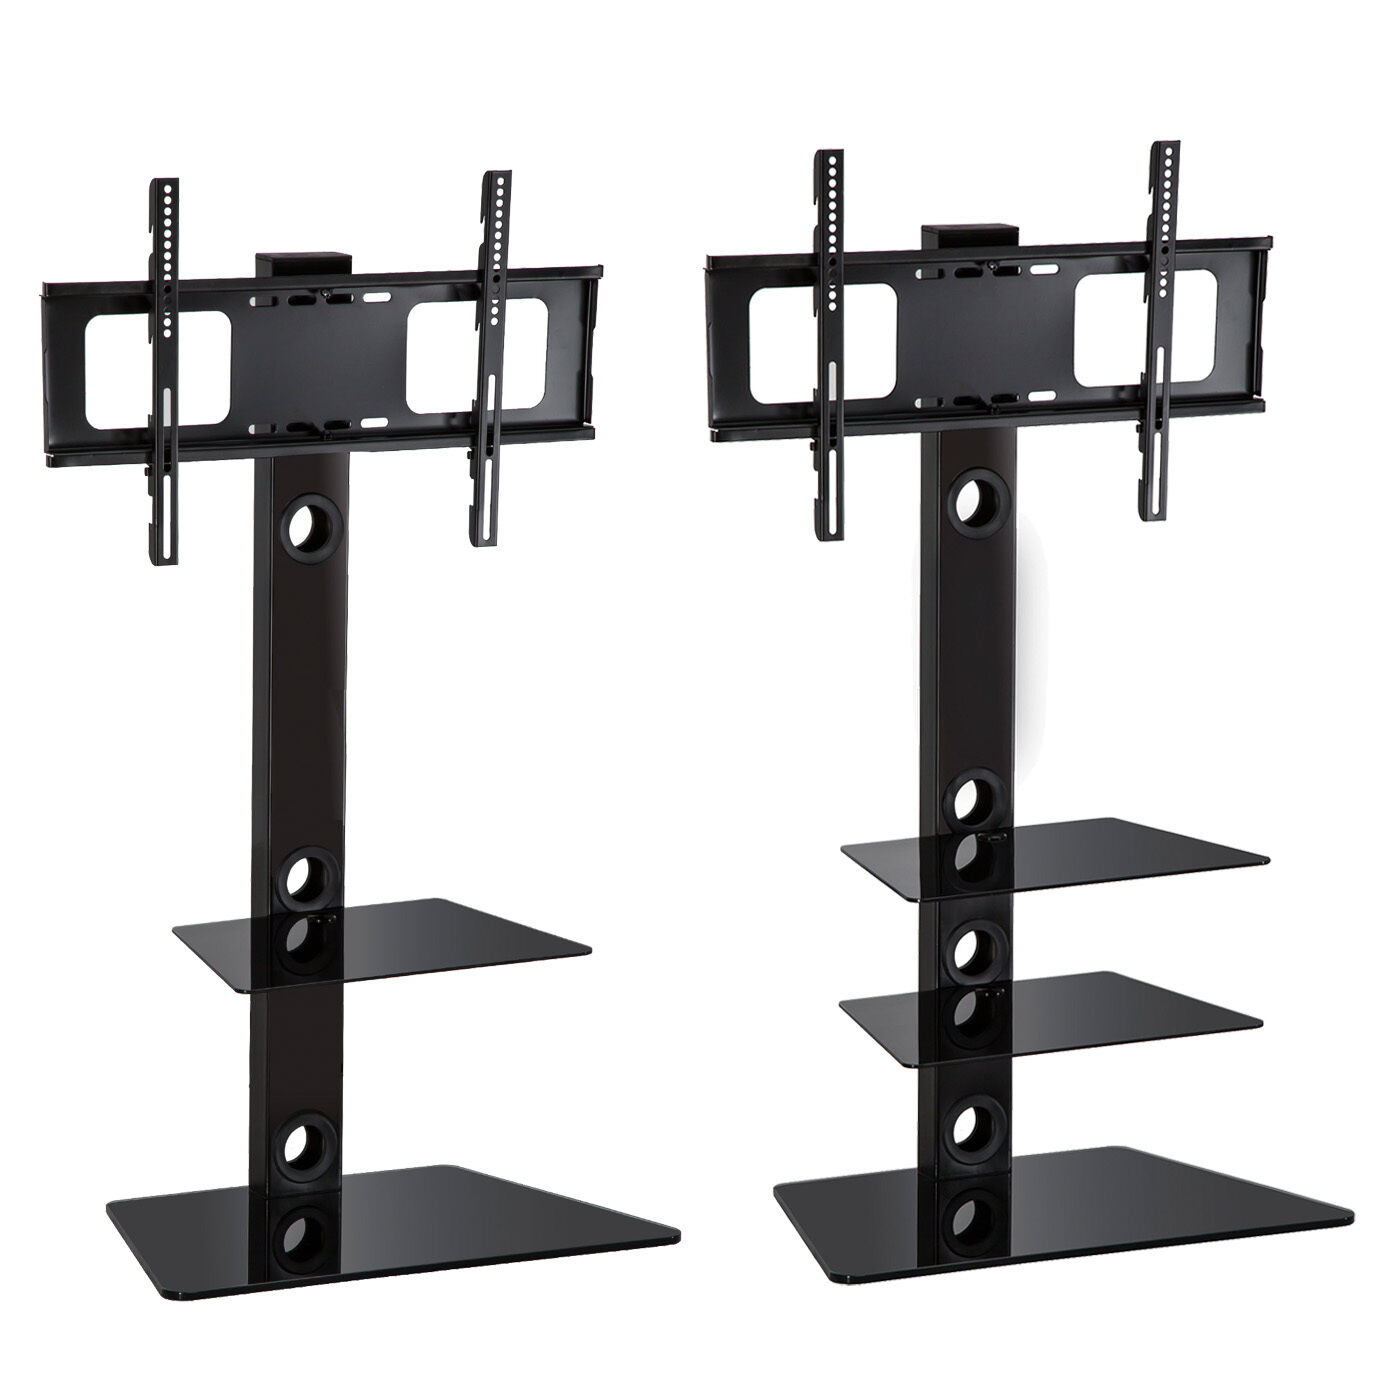 Glass TV Stand with Bracket 2 3 Shelves for 27 to 55 inches Plasma LCD LED 3D TV